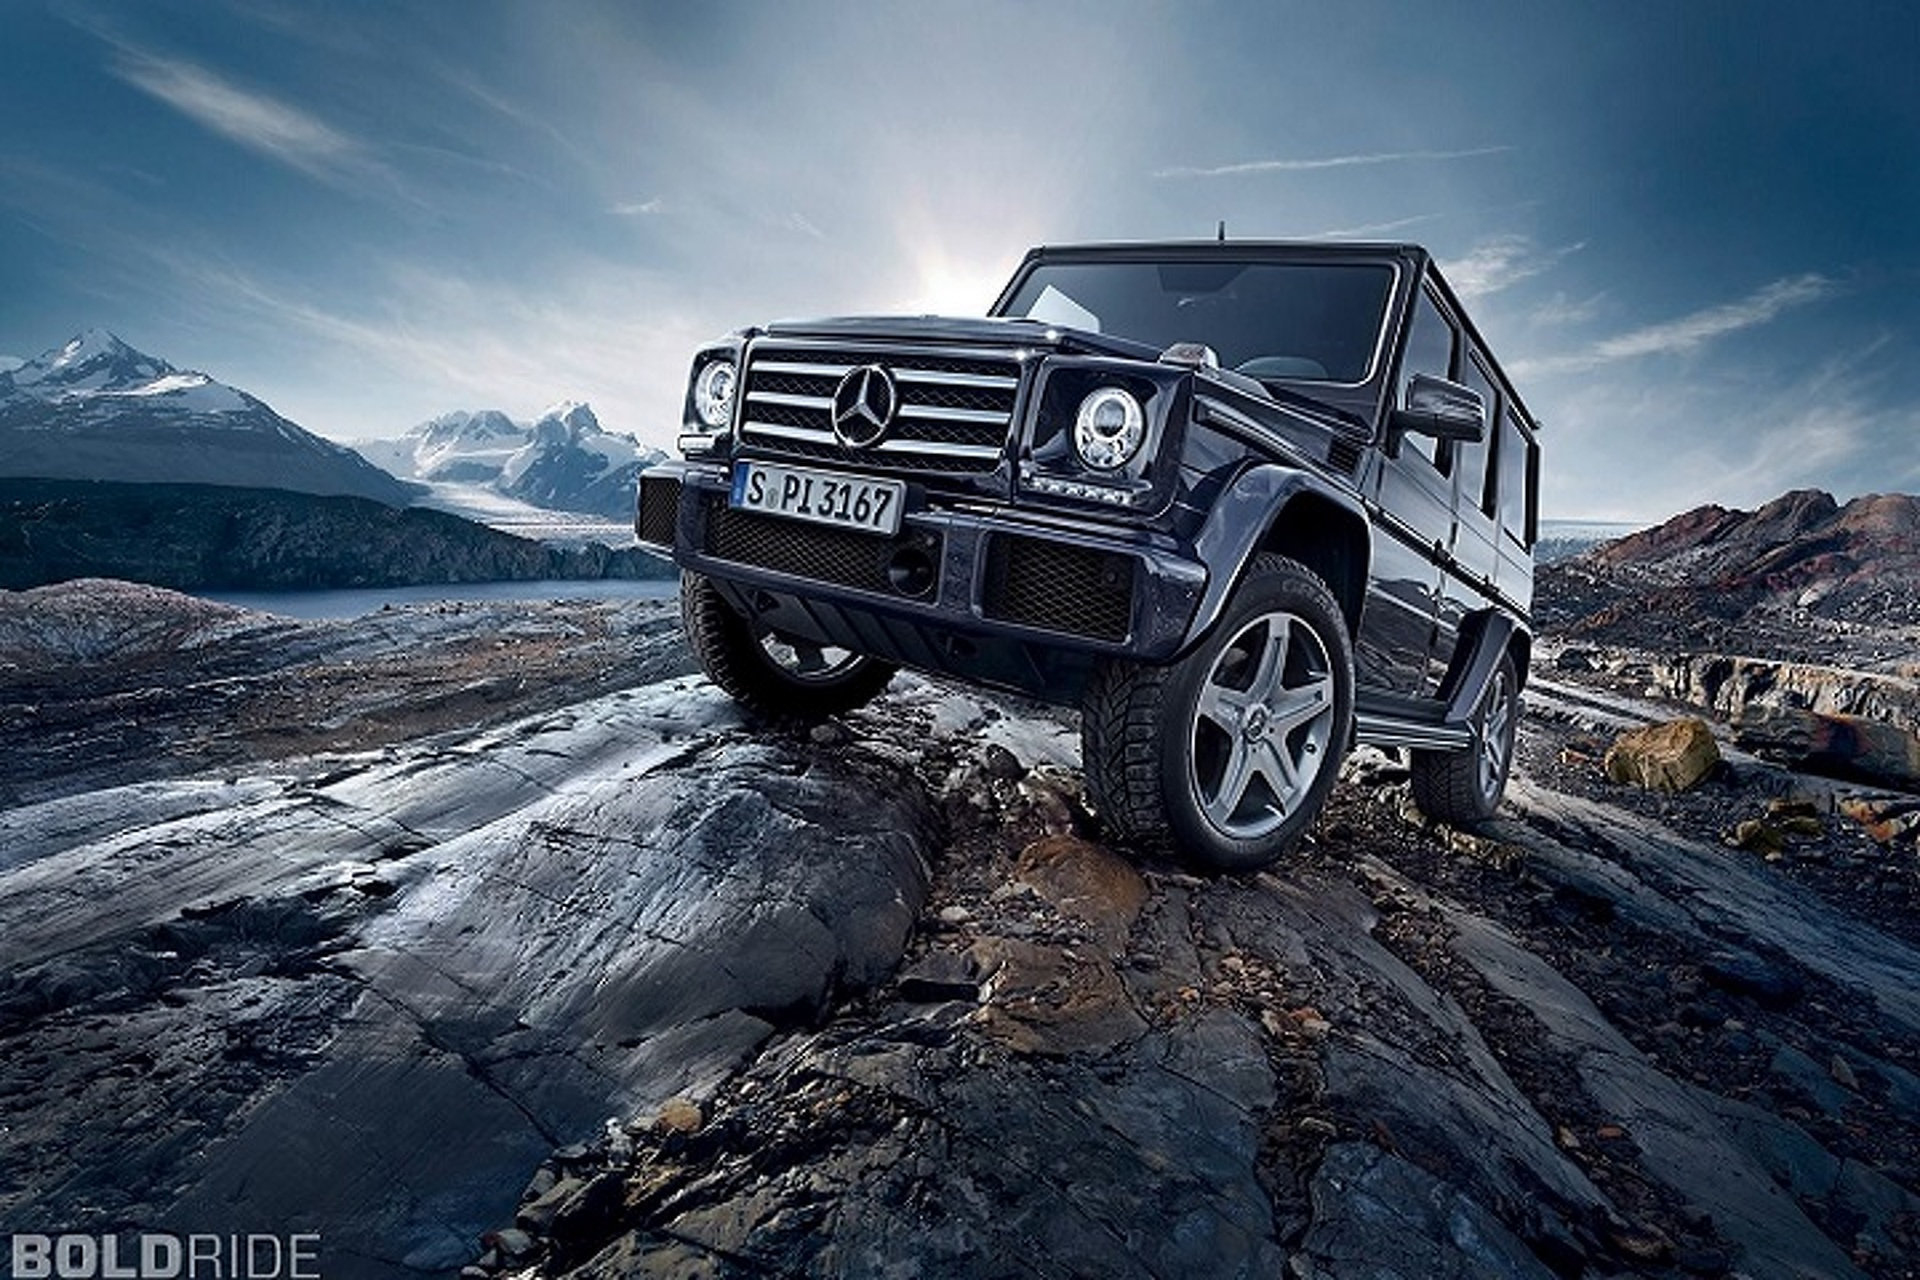 The Mercedes-Benz G-Wagen: A Must-Have For the Rich and Famous